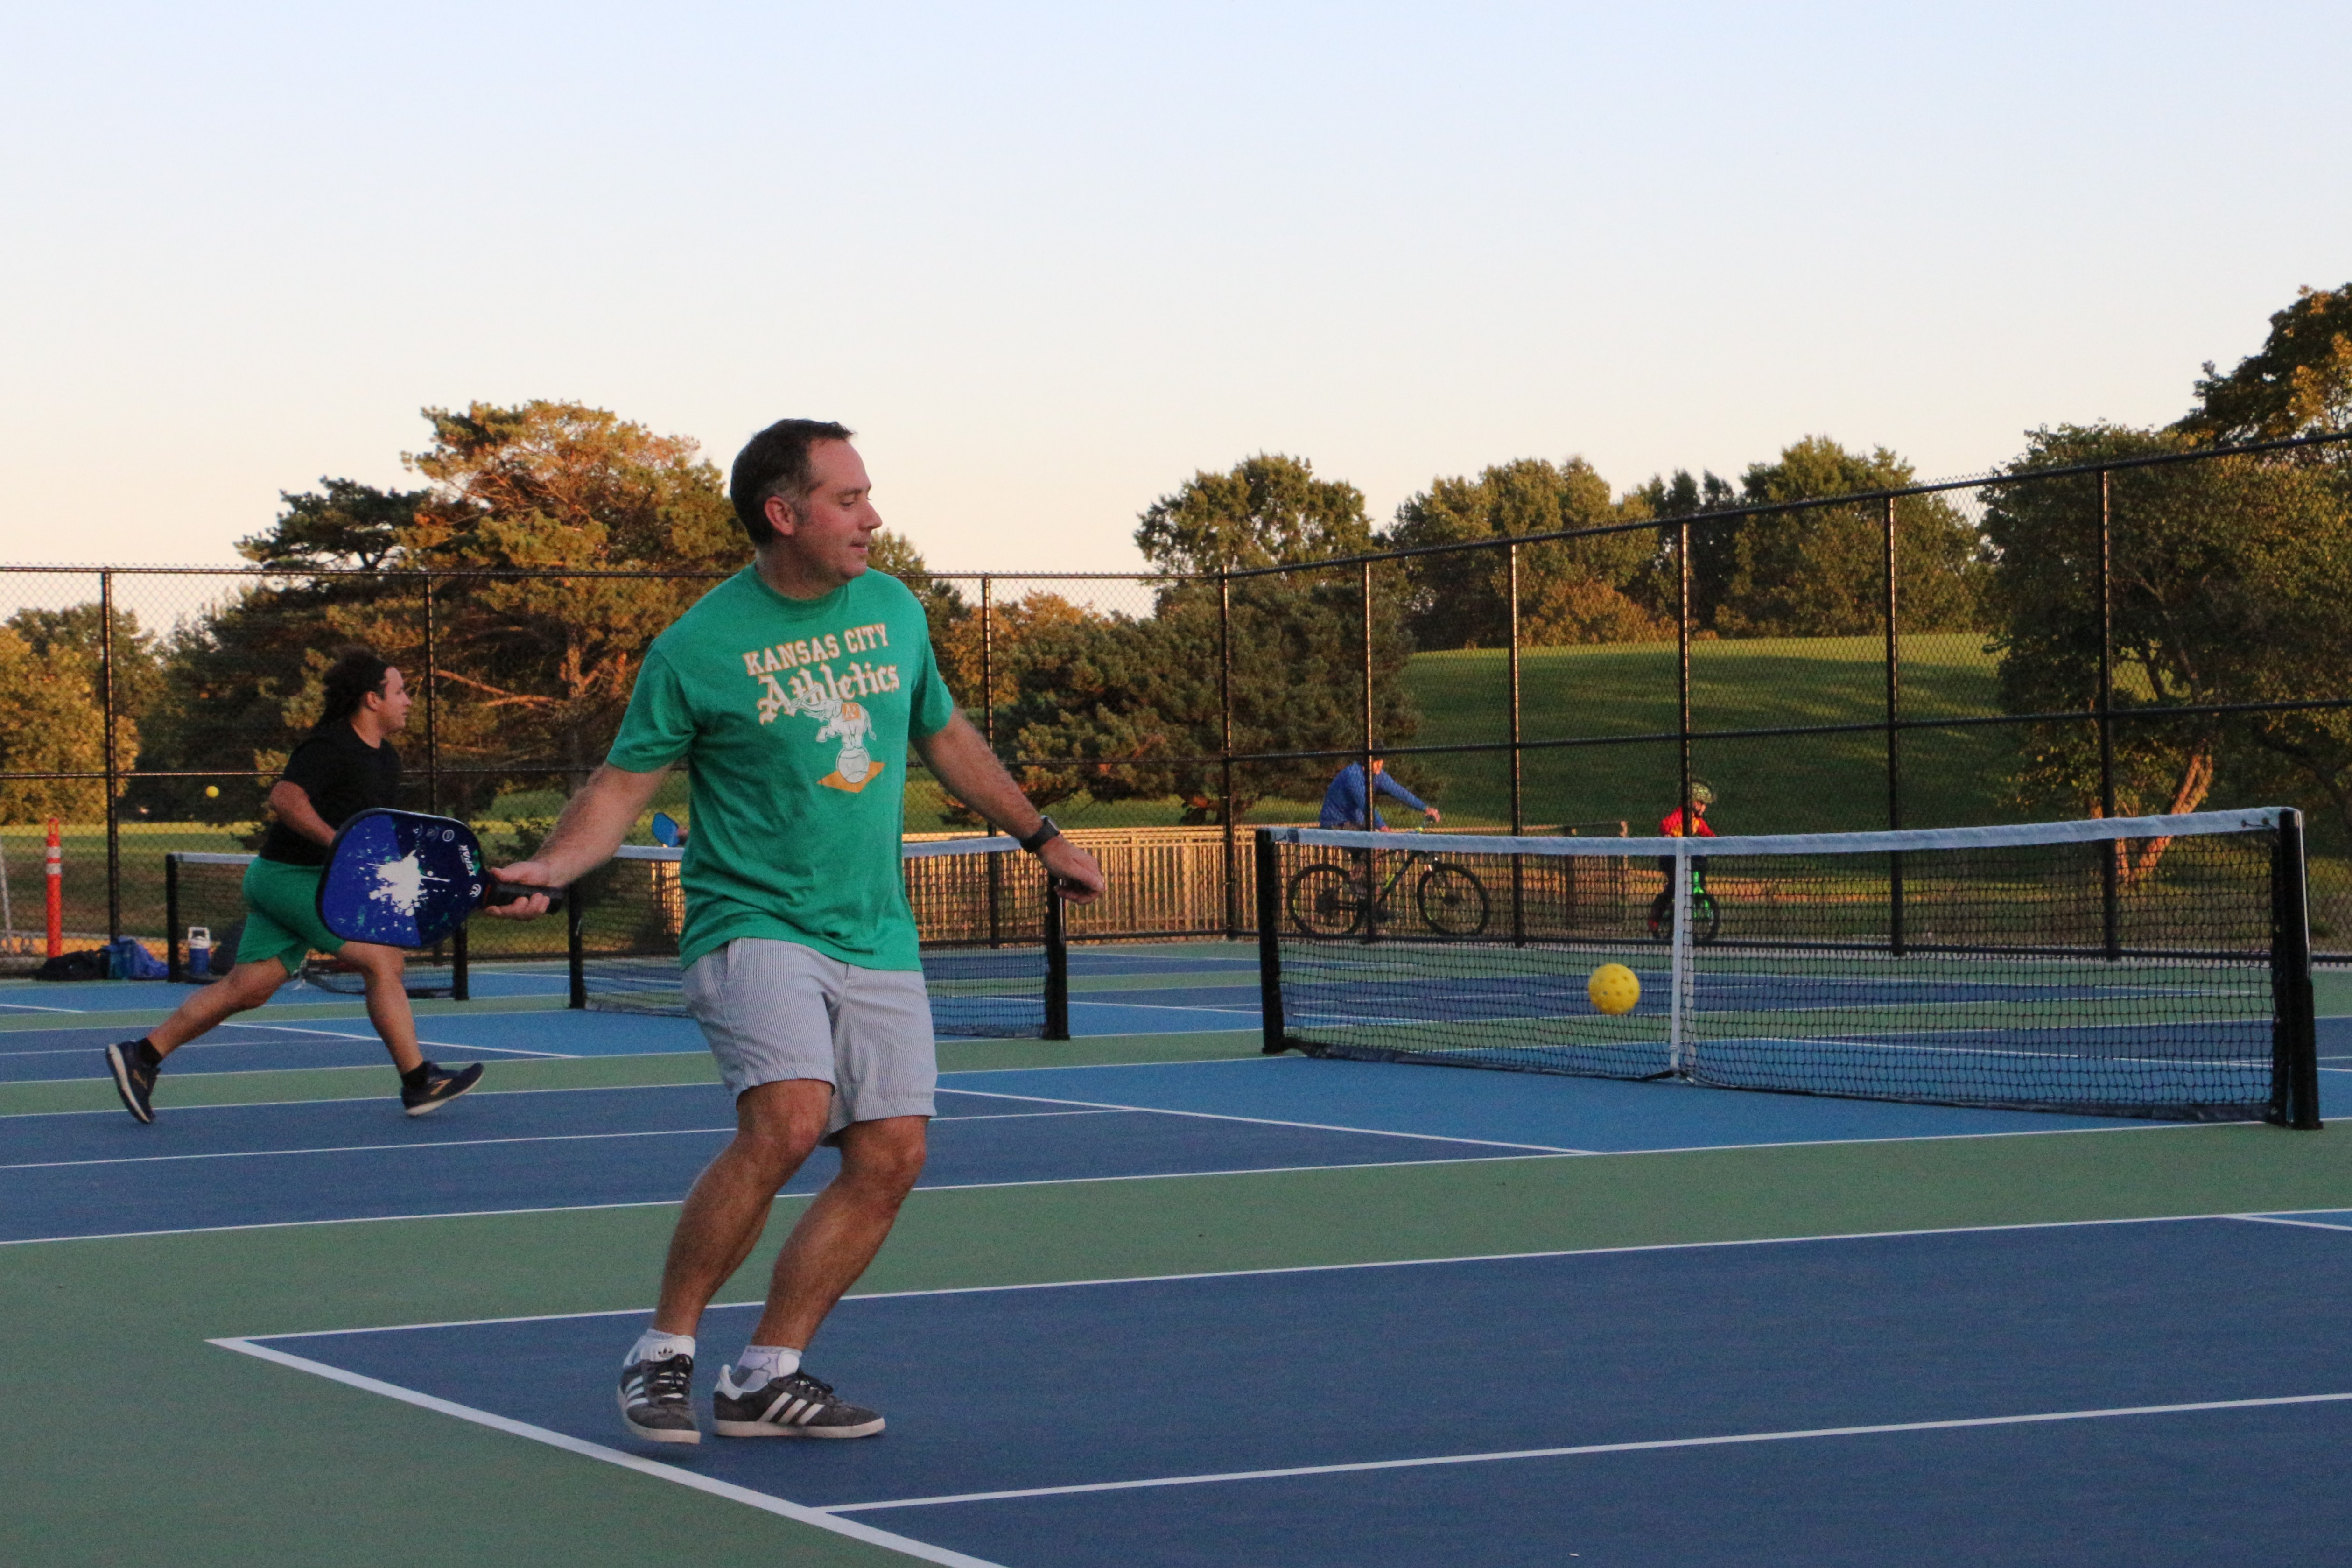 man playing pickleball on outdoor courts in a park